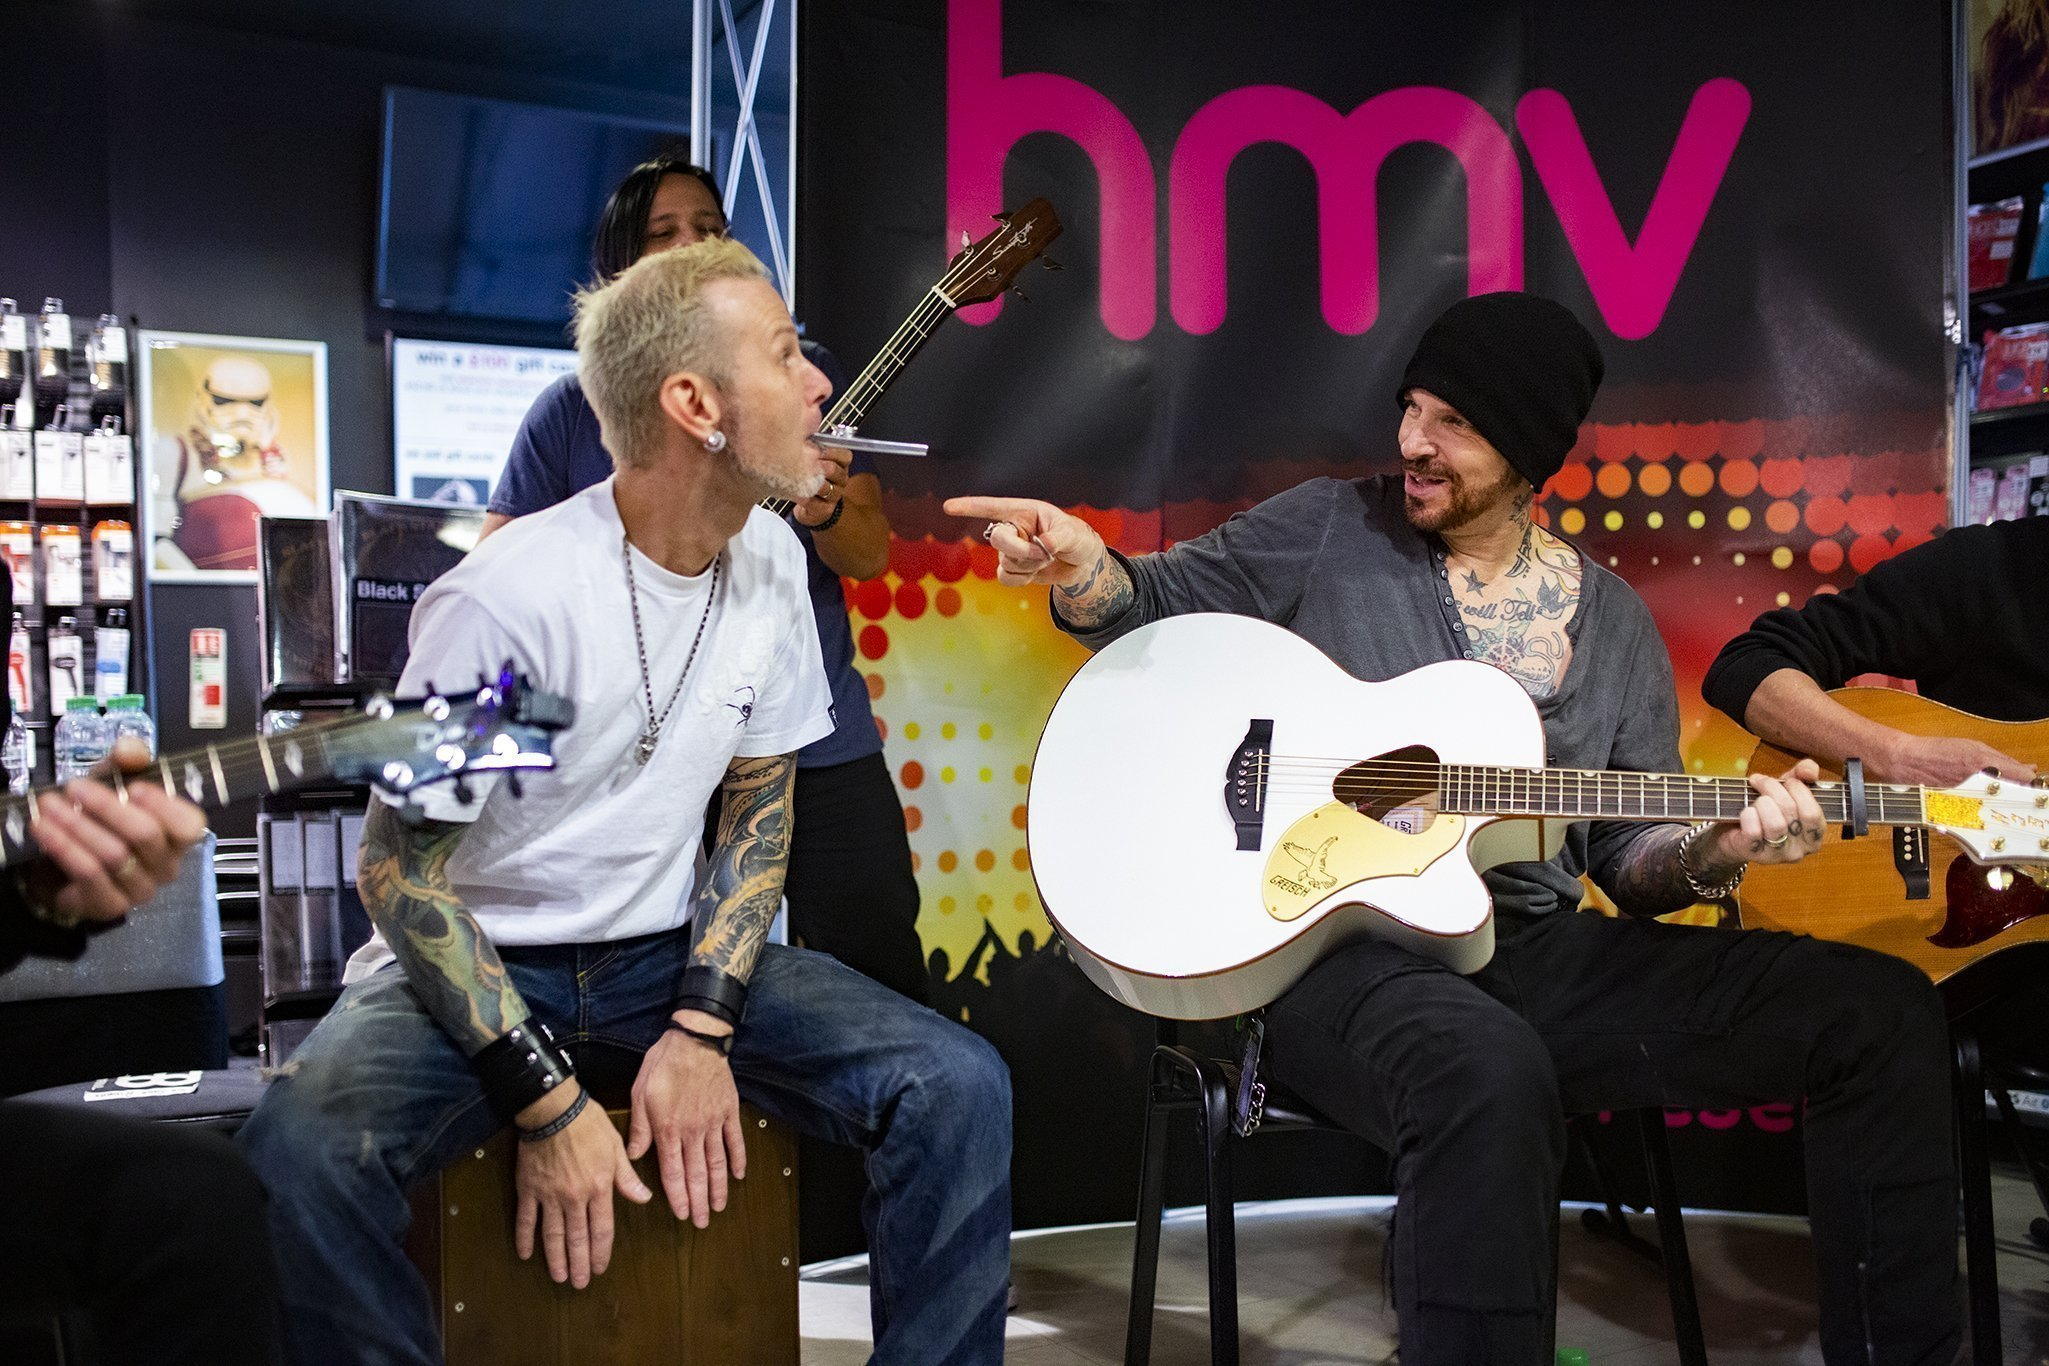 IN FOCUS// Black Star Riders - Live Acoustic Set and Signing - HMV Belfast 8